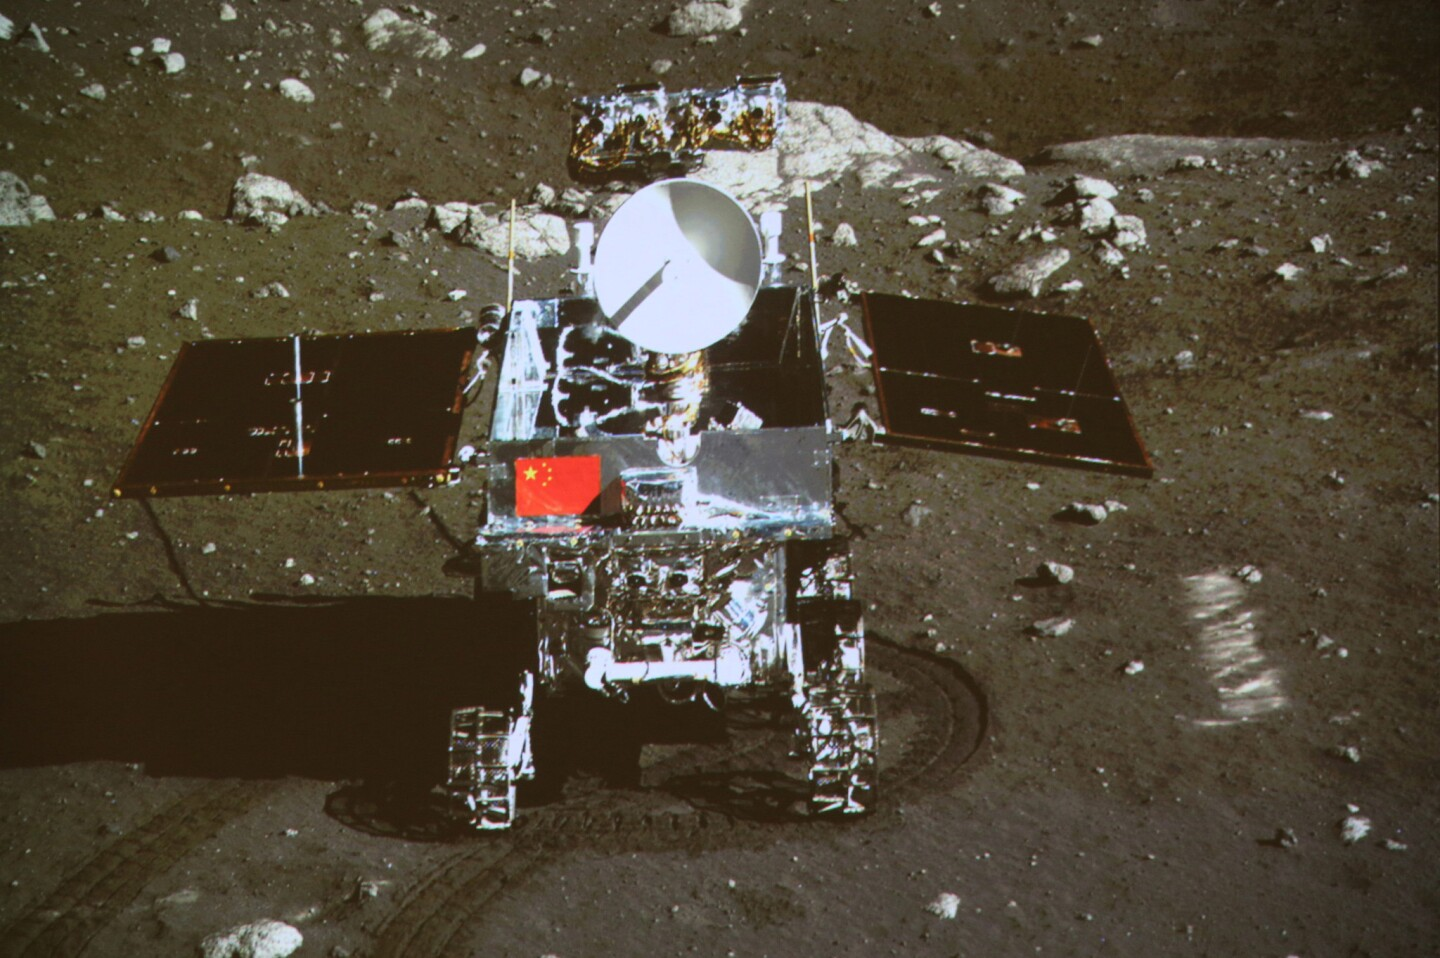 This image taken by the on-board camera of the lunar lander Chang'e 3 shows China's first moon rover, Yutu, on the lunar surface in the area known as the Bay of Rainbows. The rover left deep tracks in the loose lunar soil, state media reported Sunday.